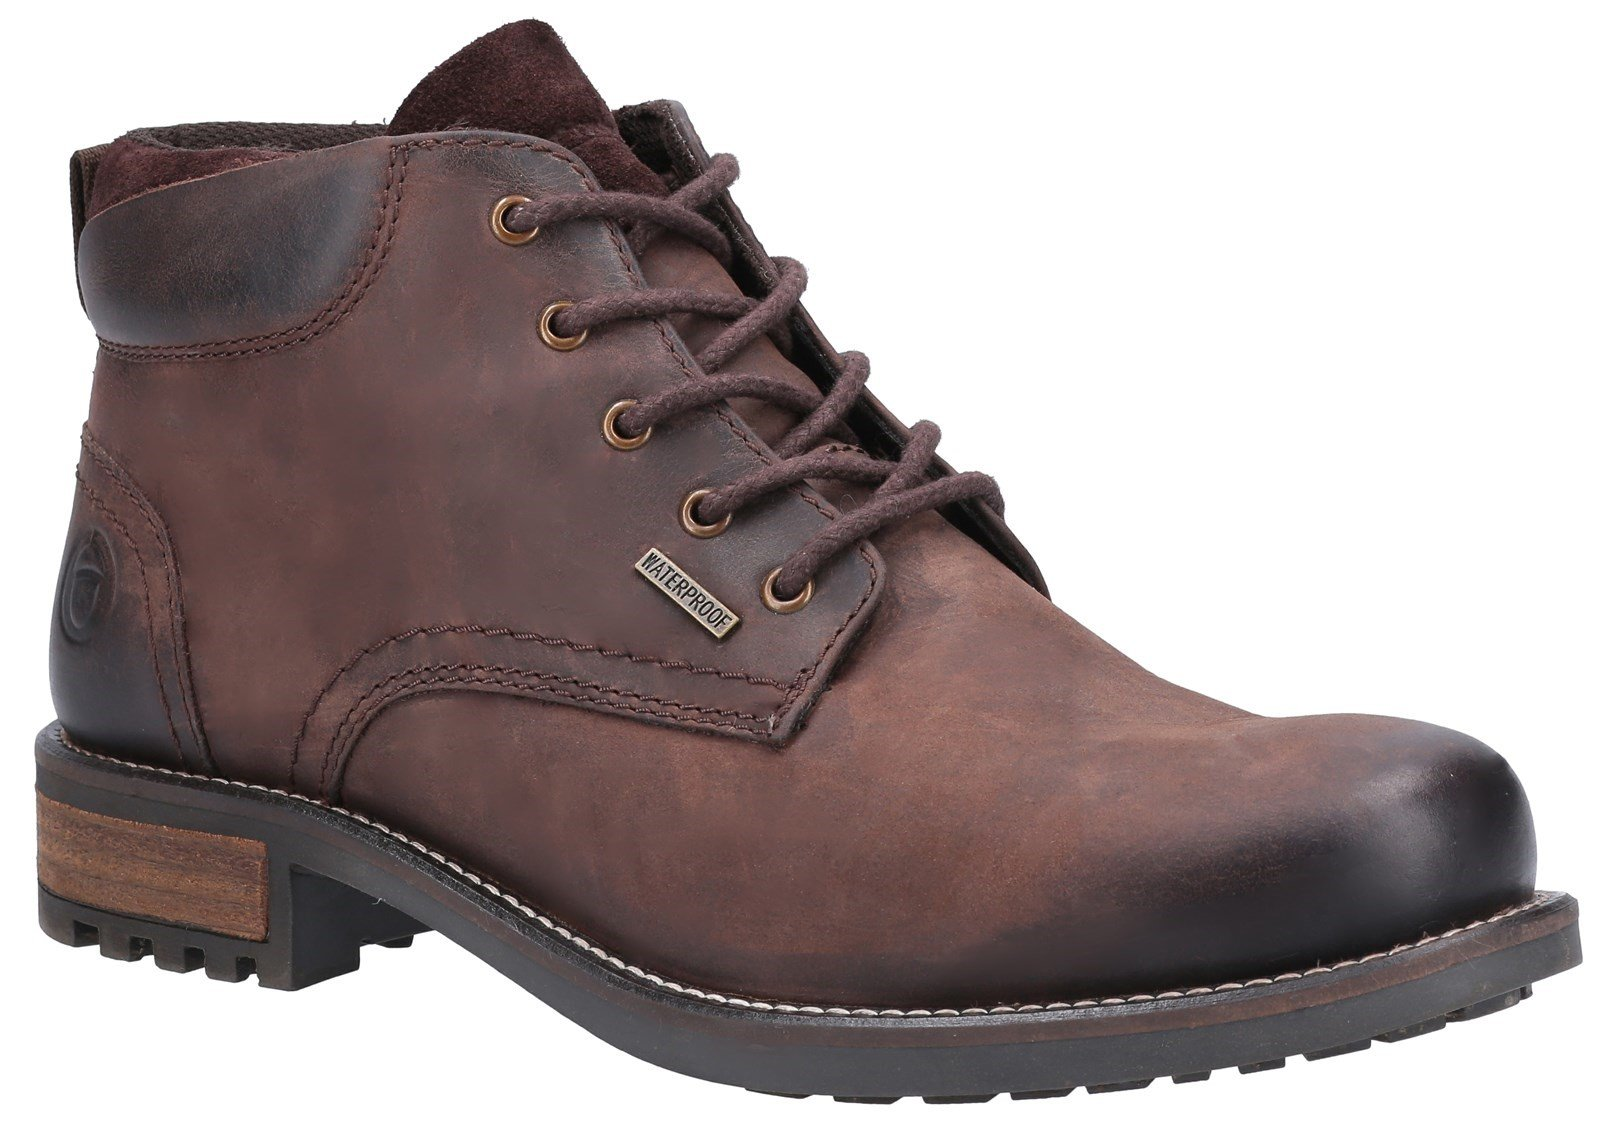 Cotswold Men's Woodmancote Lace Up Work Boots Brown 31008 - Brown 6